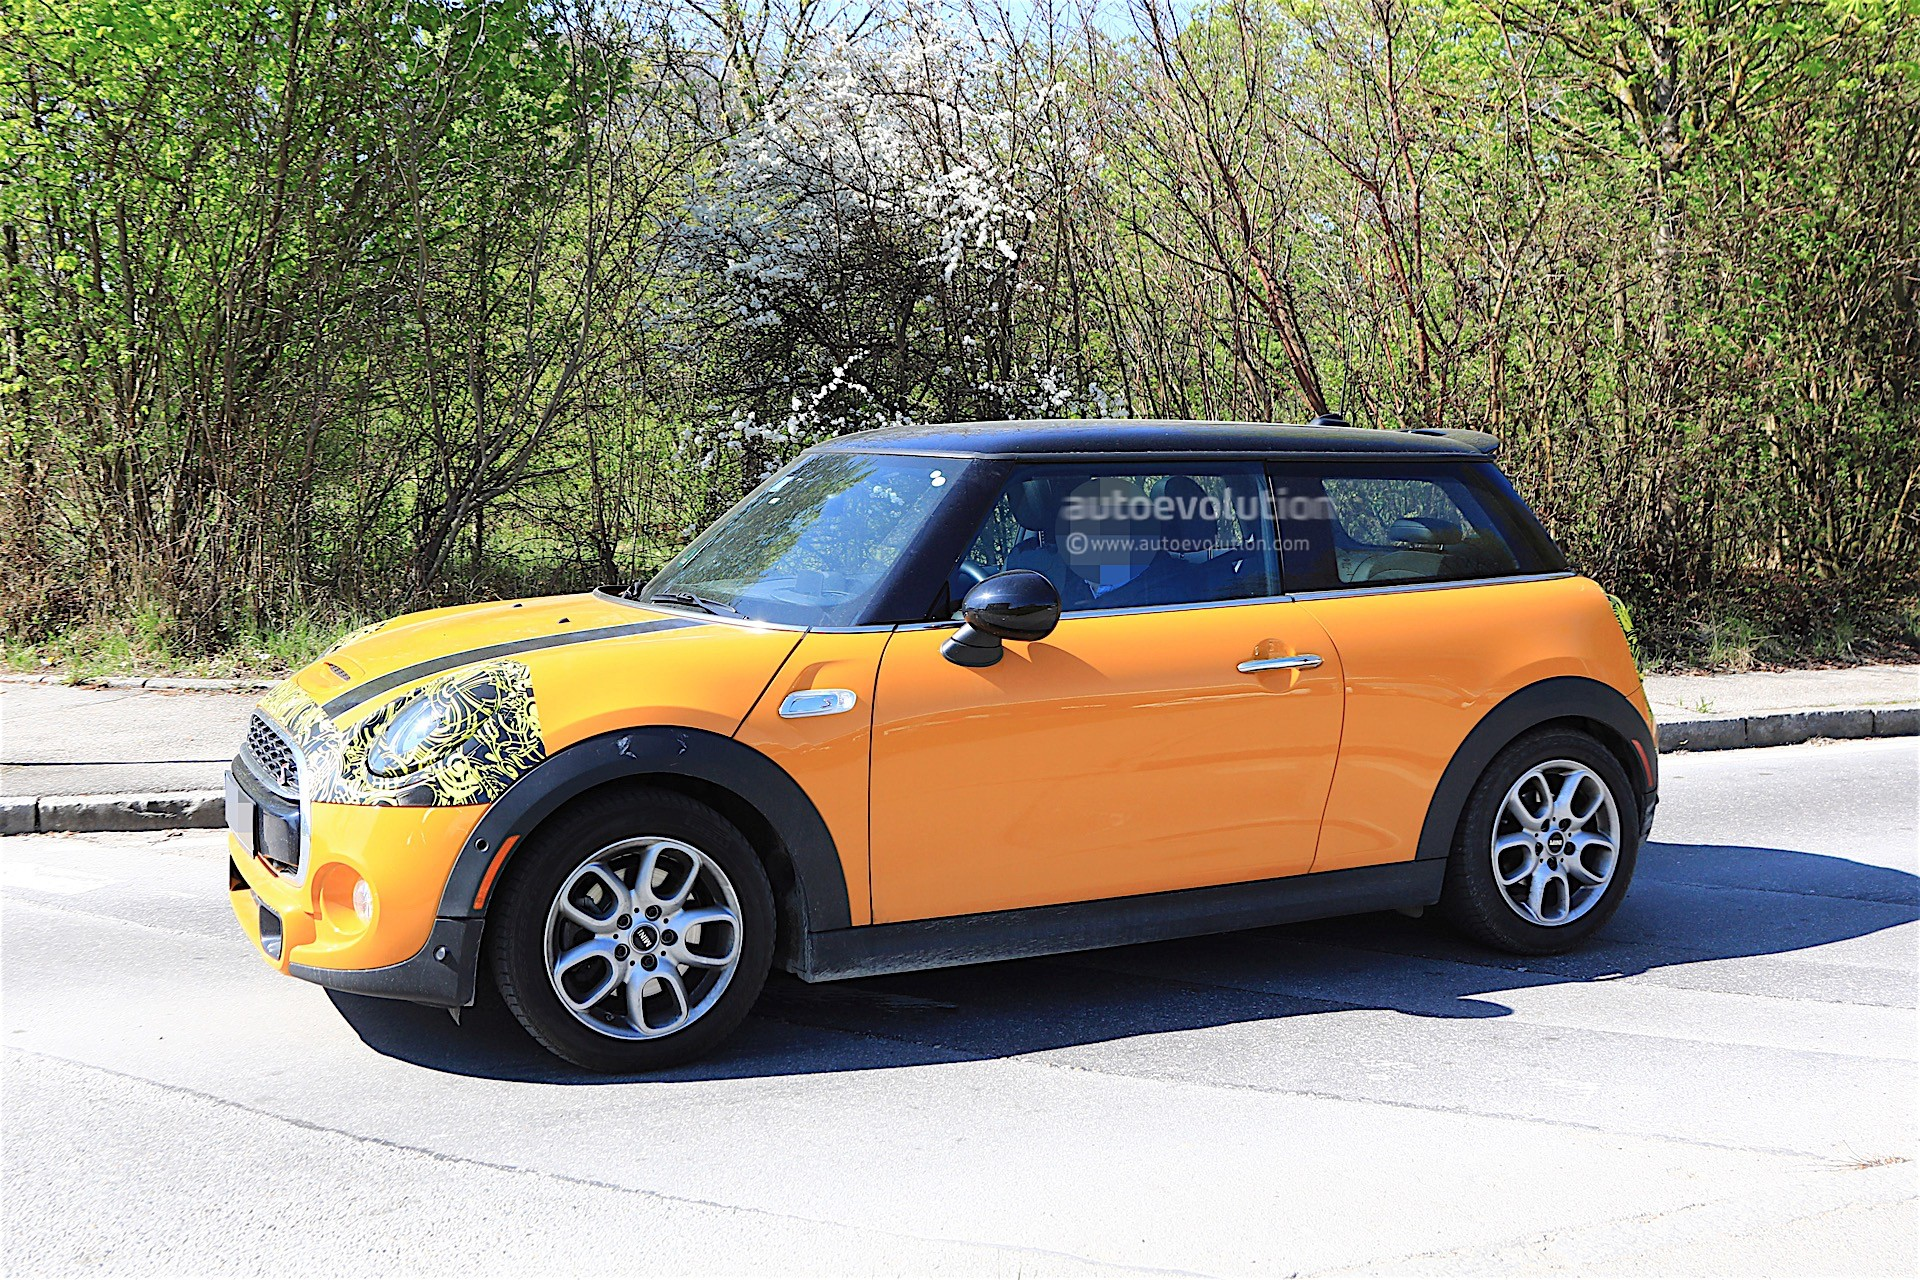 2018 MINI Cooper S Facelift Spotted Testing, It Has Minor ...